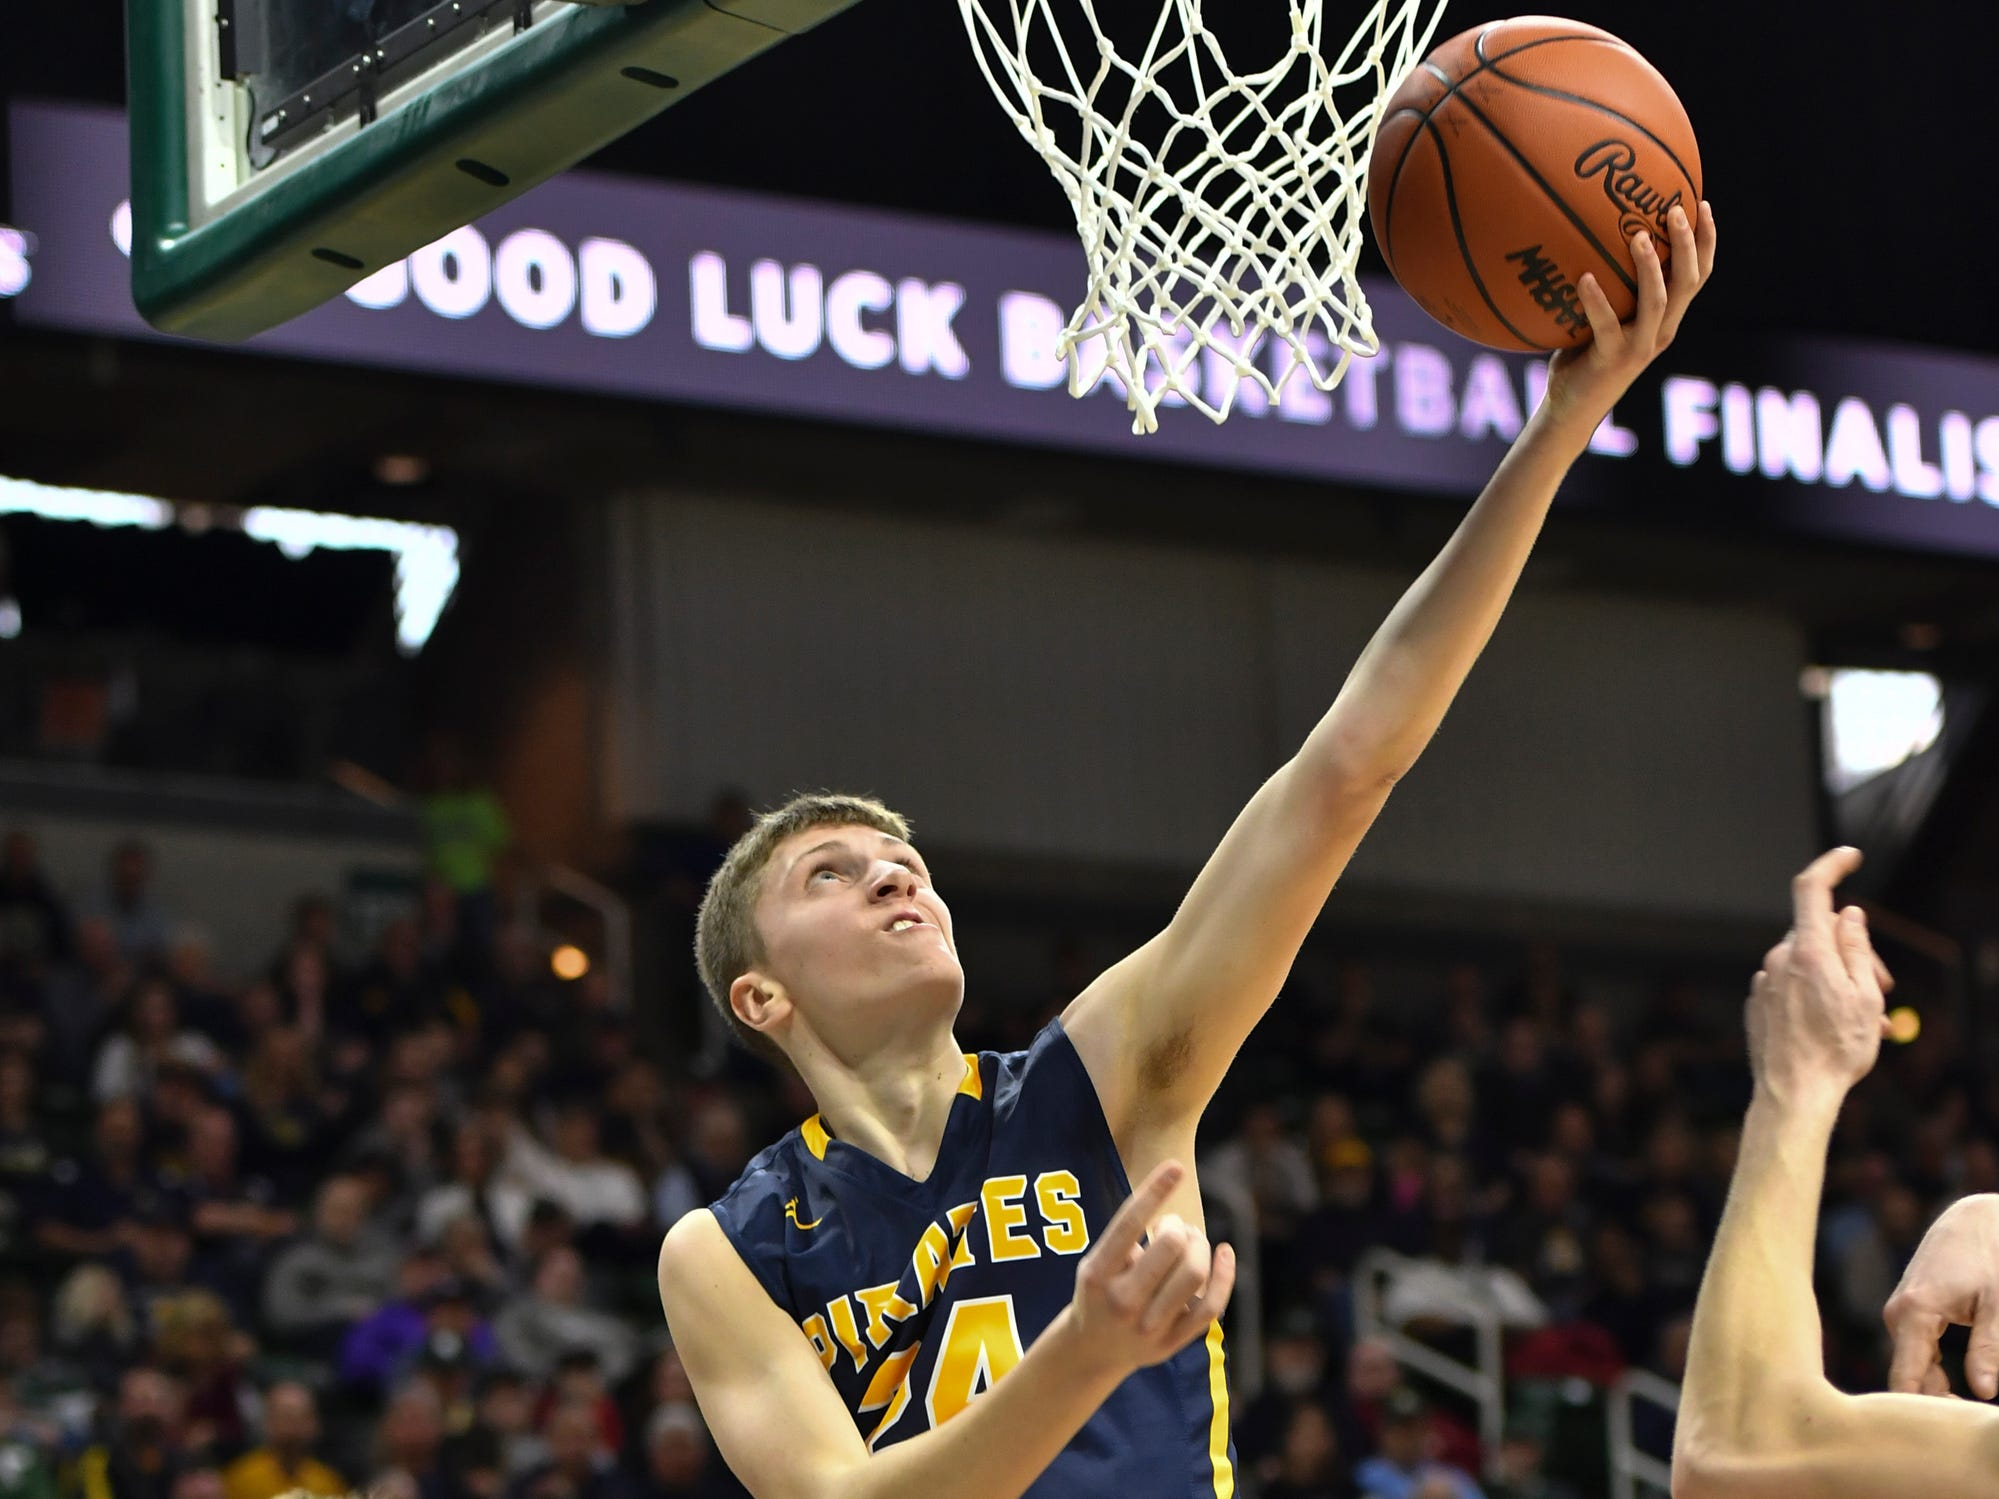 Keegan Smith of Pewamo-Westphalia connects on a reverse layup Thursday, March 14, 2019, against Erie-Mason's John Sweeney during the MHSAA Div. 3 state semifinal at the Breslin Center in East Lansing.   P-W earned a berth in the state final winning 60-45.